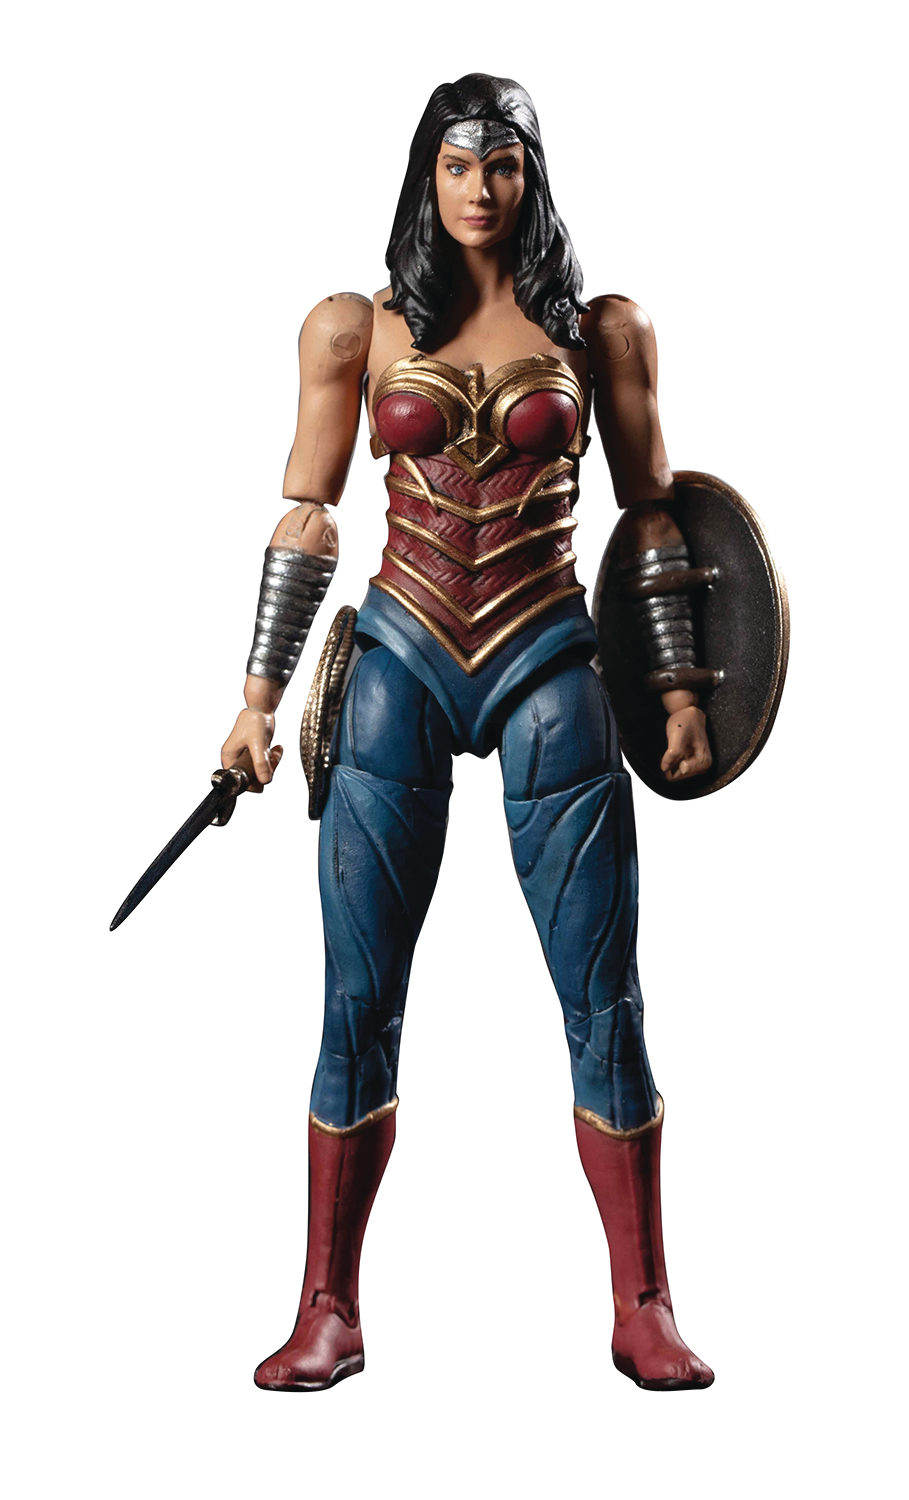 INJUSTICE 2 WONDER WOMAN PX 1/18 SCALE FIG